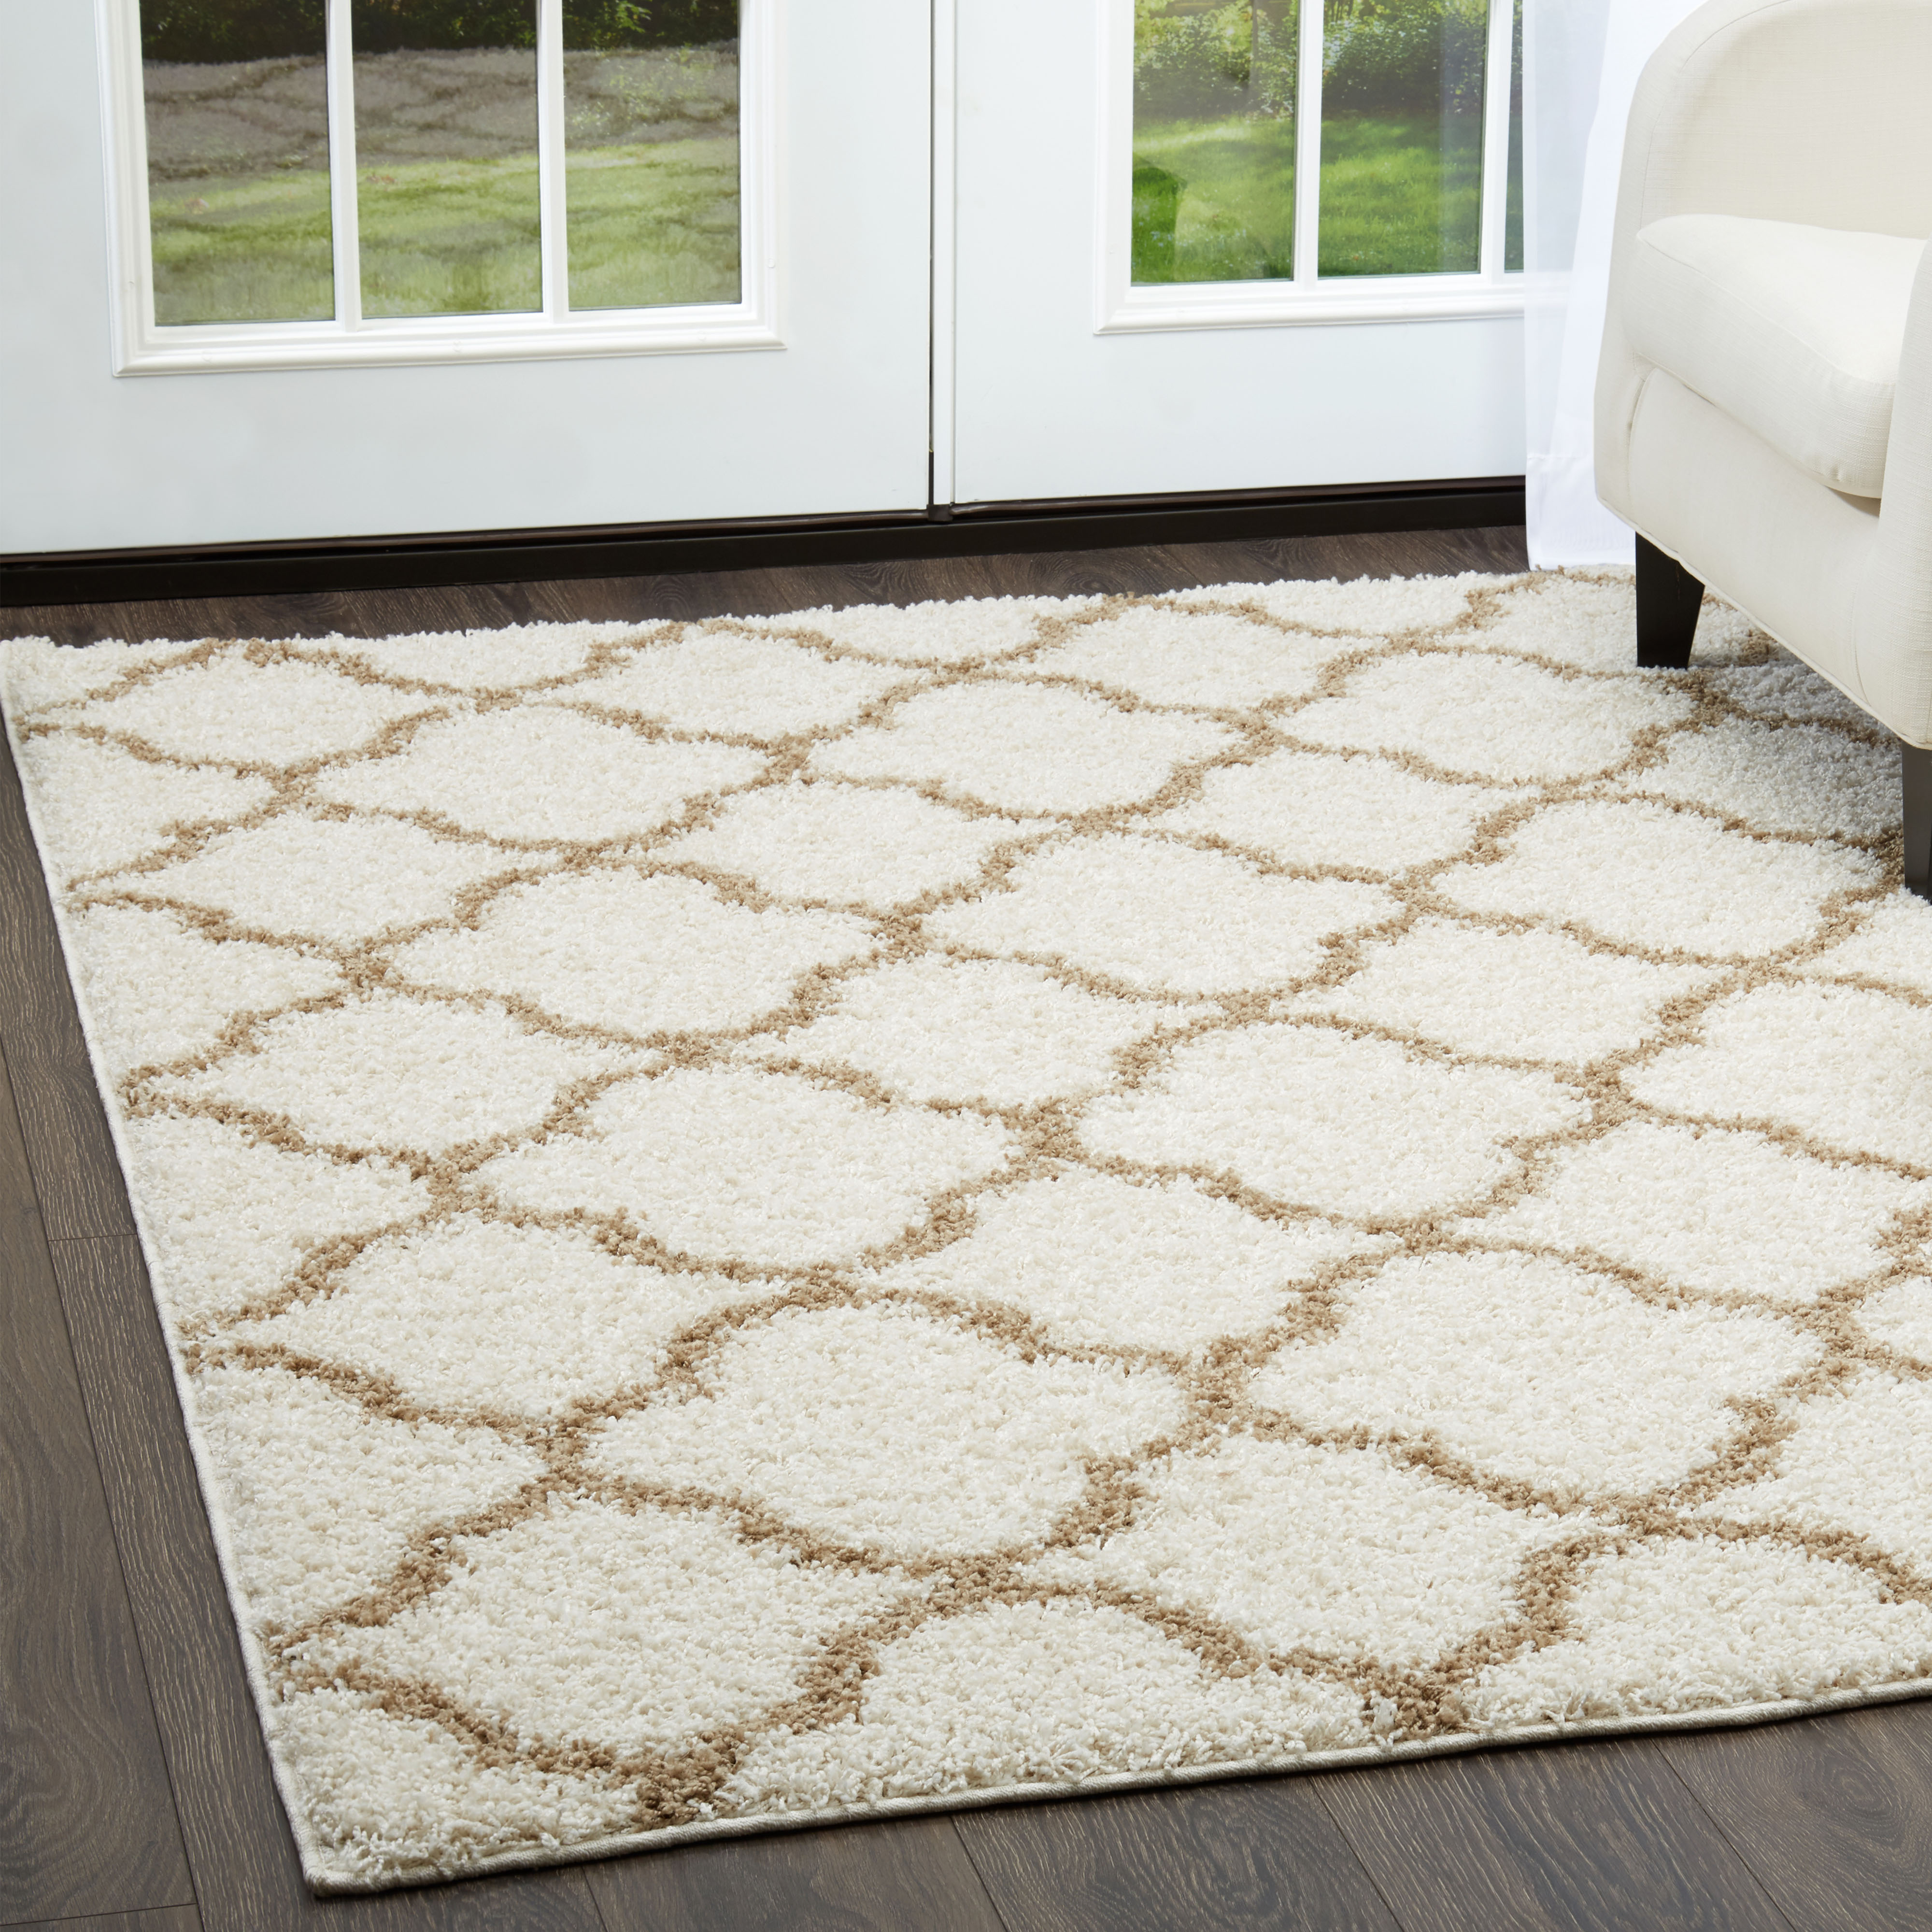 Nicole Miller Area Rugs Lowes Rug Images For You